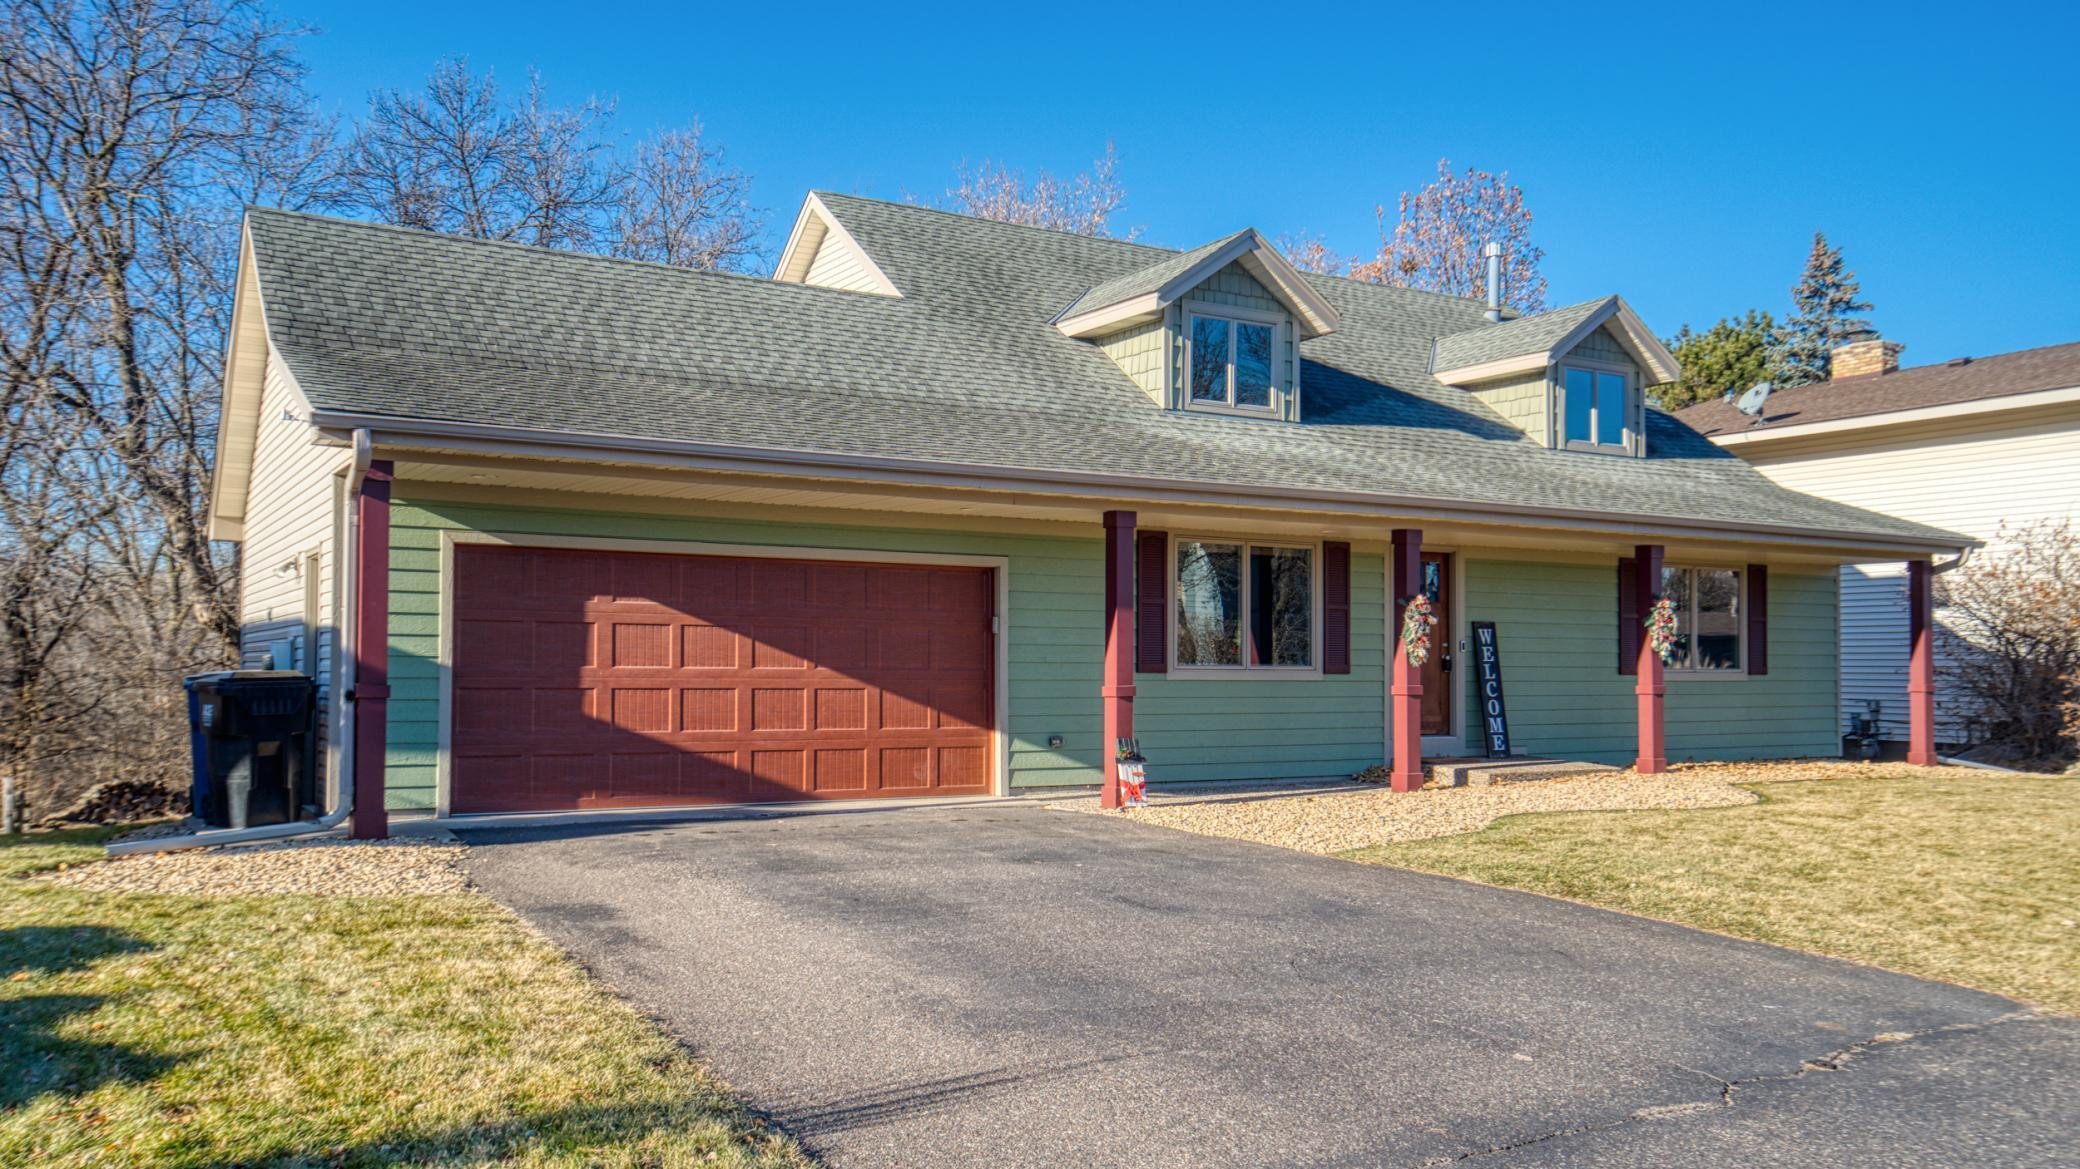 Exceptional 4+ bedroom home with wooded lot that backs up to Rice Creek & Creekview Park in a neighborhood with an association maintained in-ground pool, basketball court, and outdoor recreational area with a gazebo.